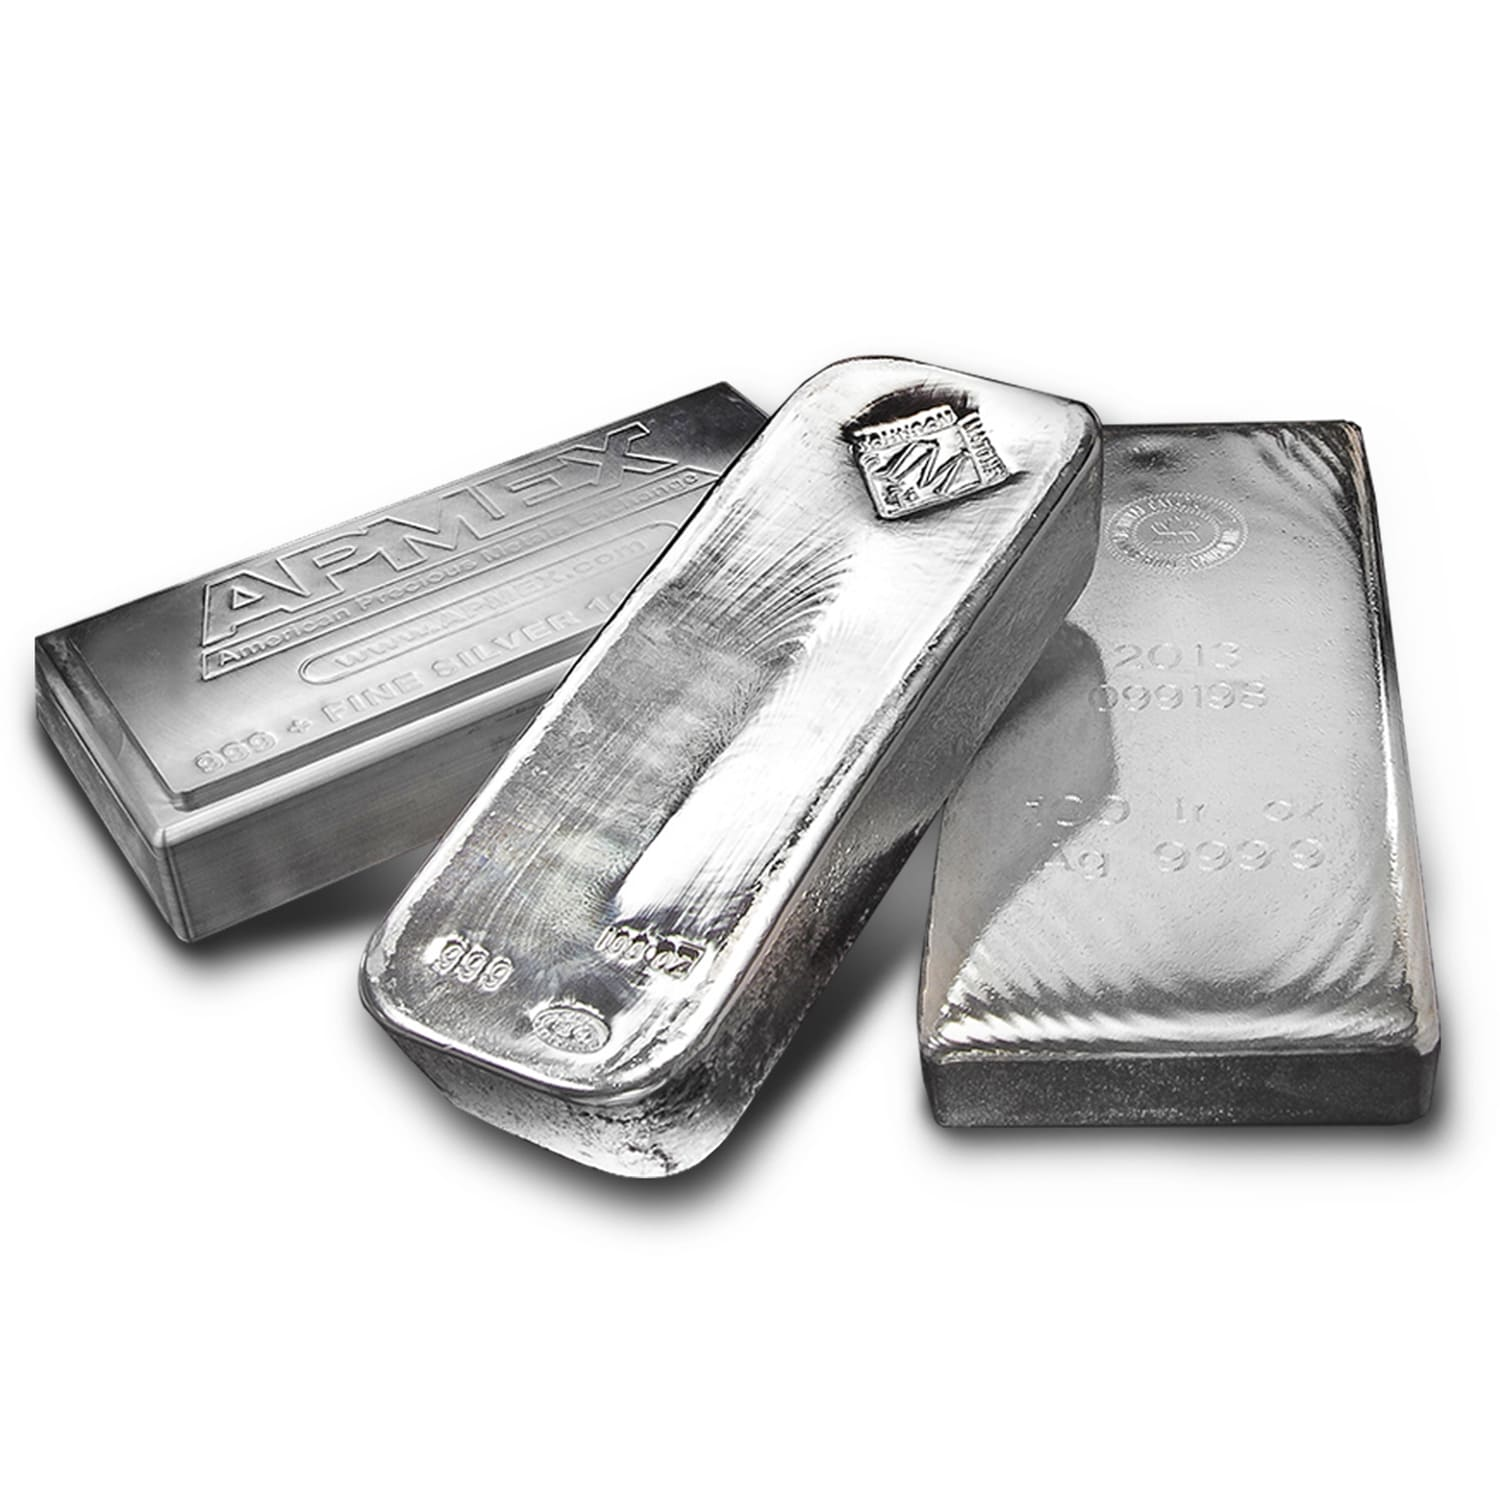 103.90 oz Silver Bars - Secondary Market